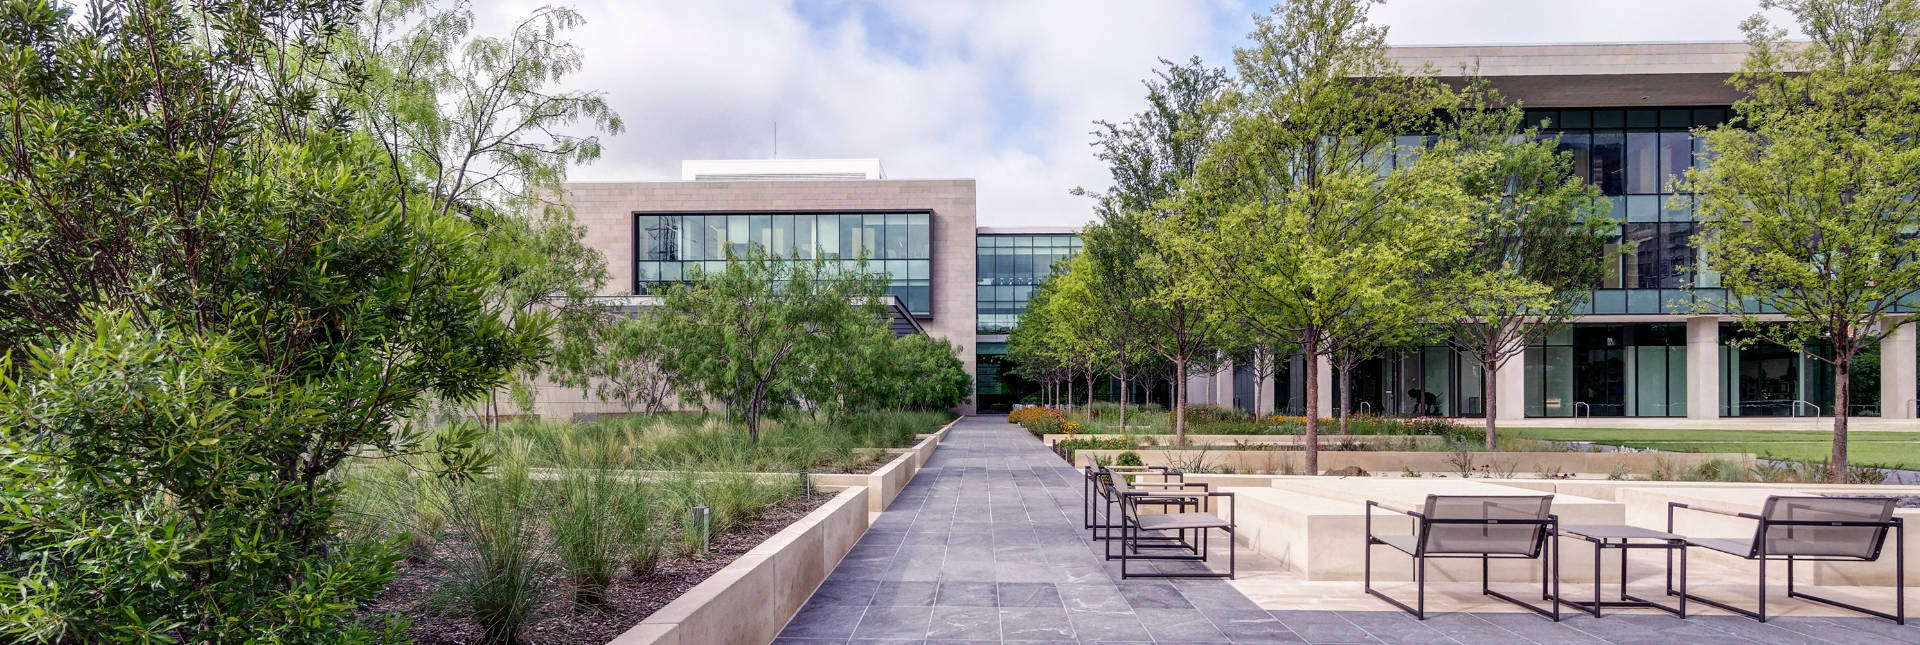 Turtle Creek Office | Dallas Commercial Landscaping Services by Southern Botanical